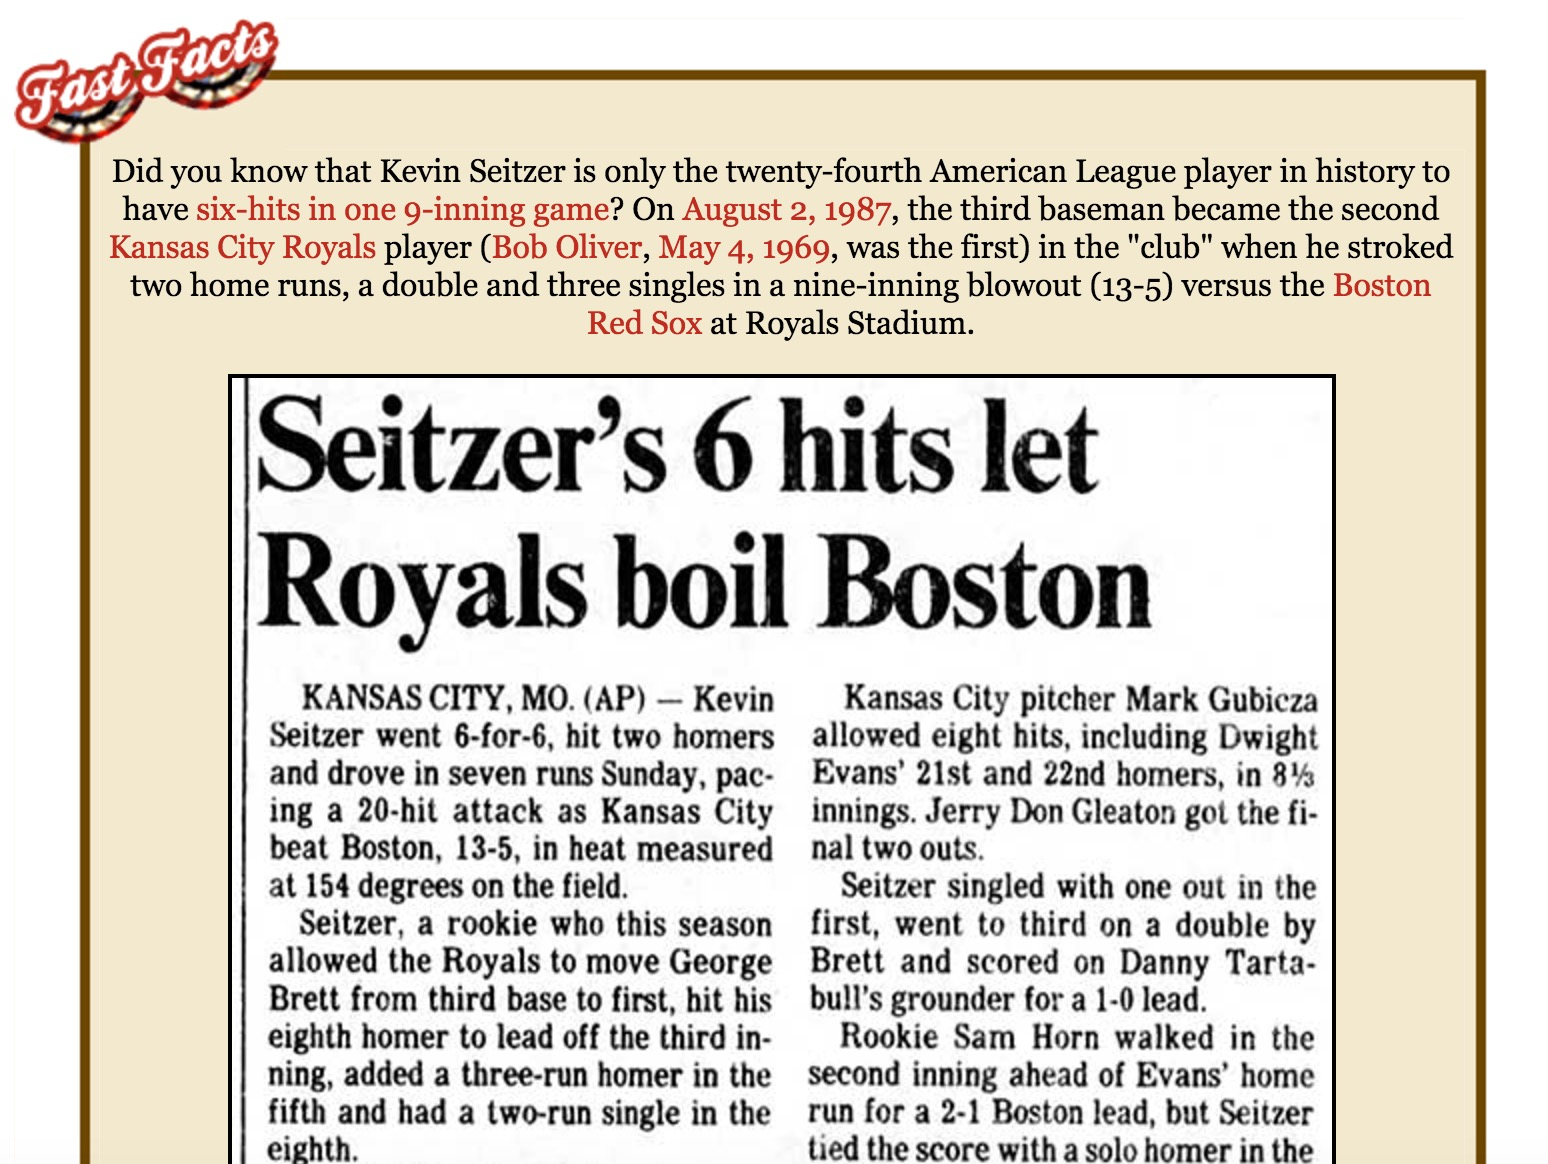 http://www.baseball-almanac.com/players/player.php?p=seitzke01 - See the whole story in the Baseball Almanac.